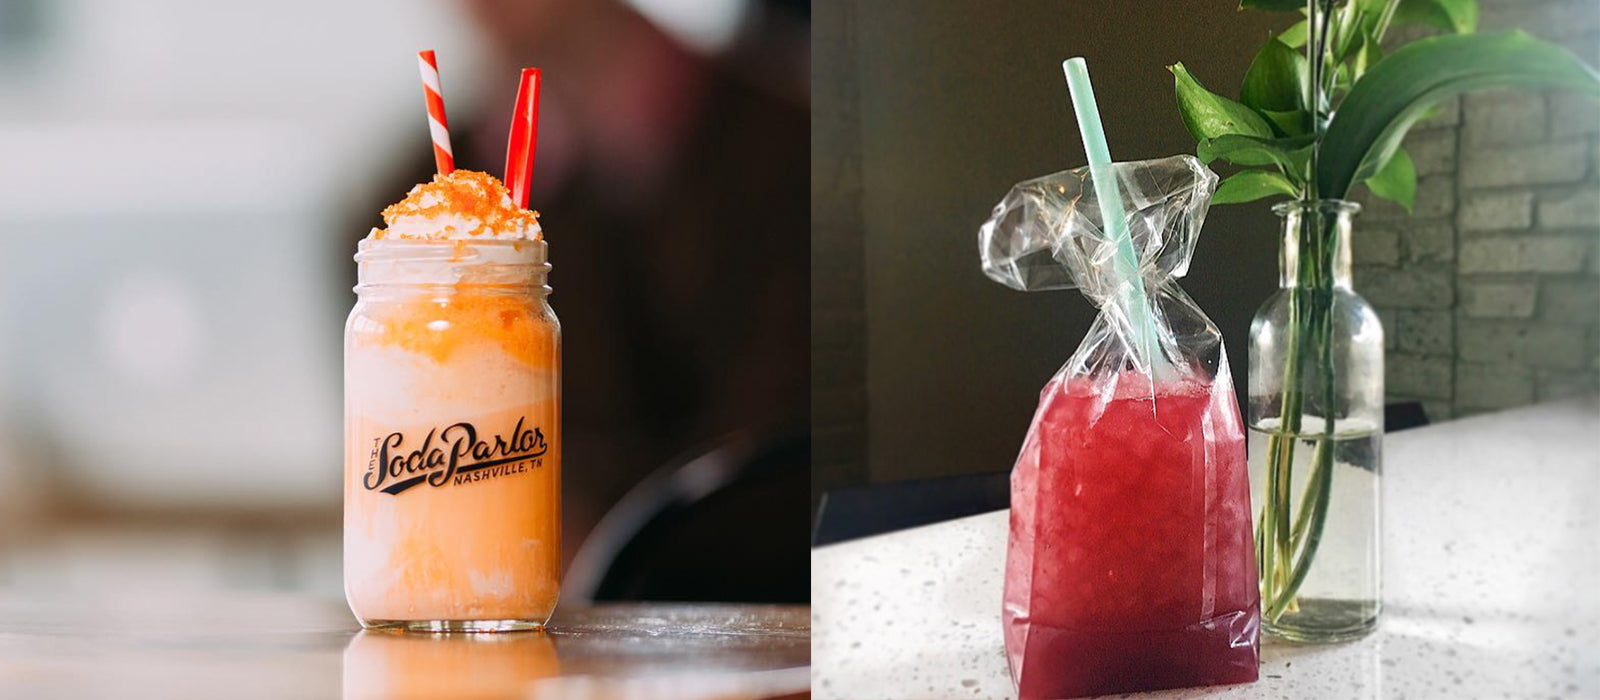 7 Drinks That Are as Instagrammable as They are Tasty